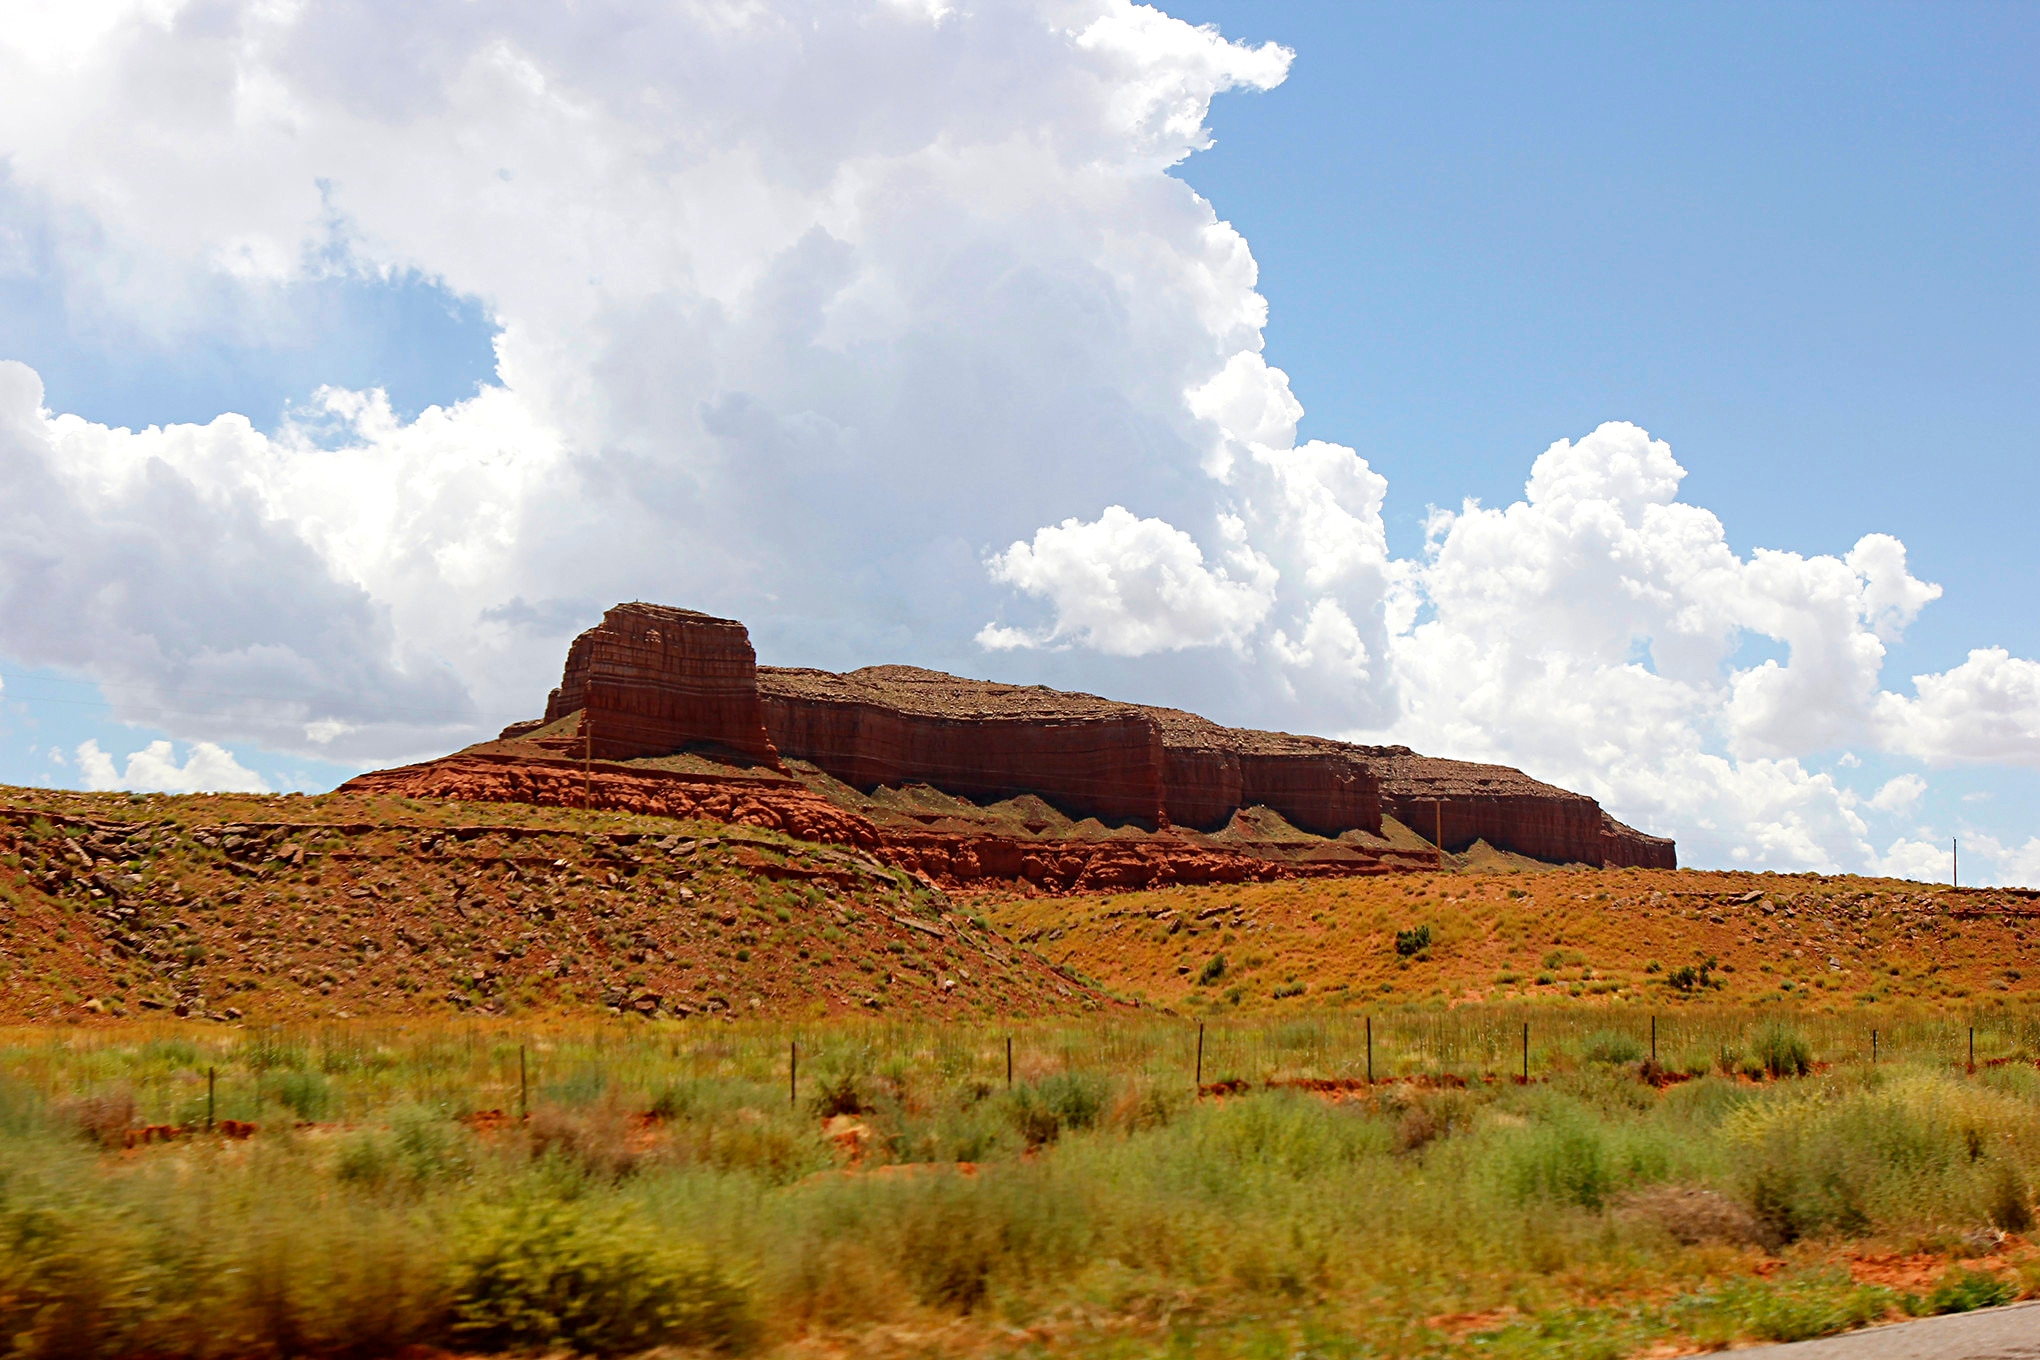 The road leading from the Four Corners to the Grand Canyon, U.S. 160, is a lonely one, but the scenery is stunning.